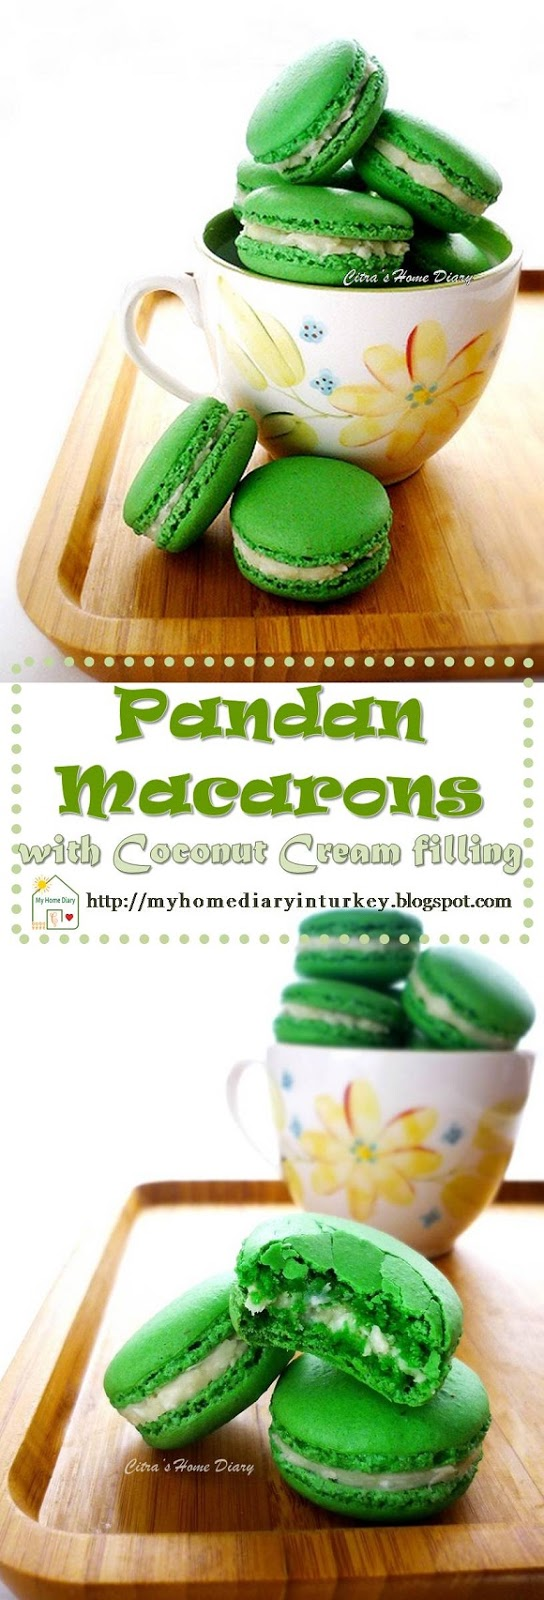 how to make macaron filling without cream